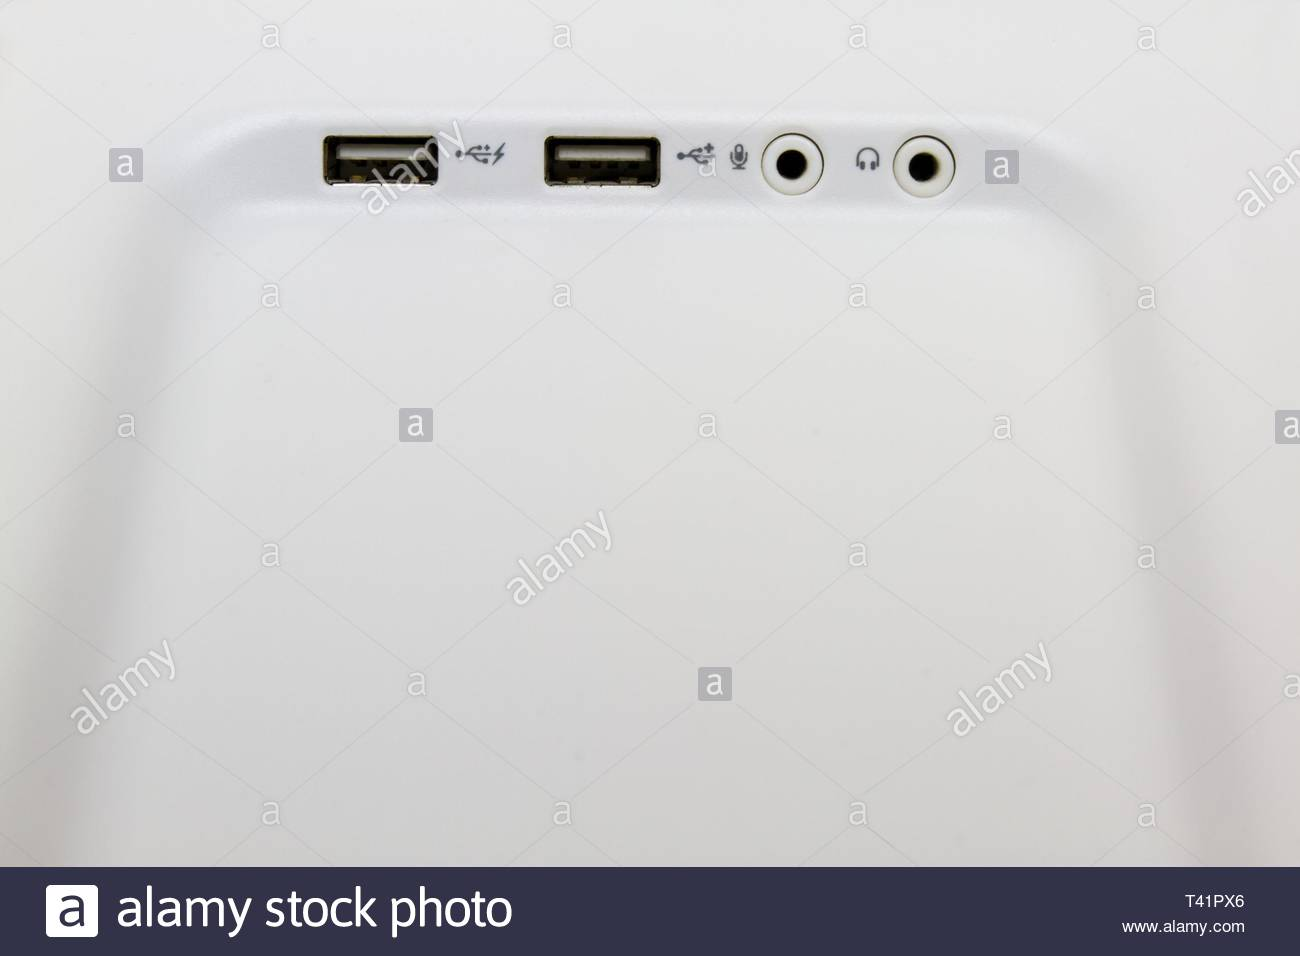 USB ports on a desktop min tower personal computer with microphone and headphone jacks. - Stock Image